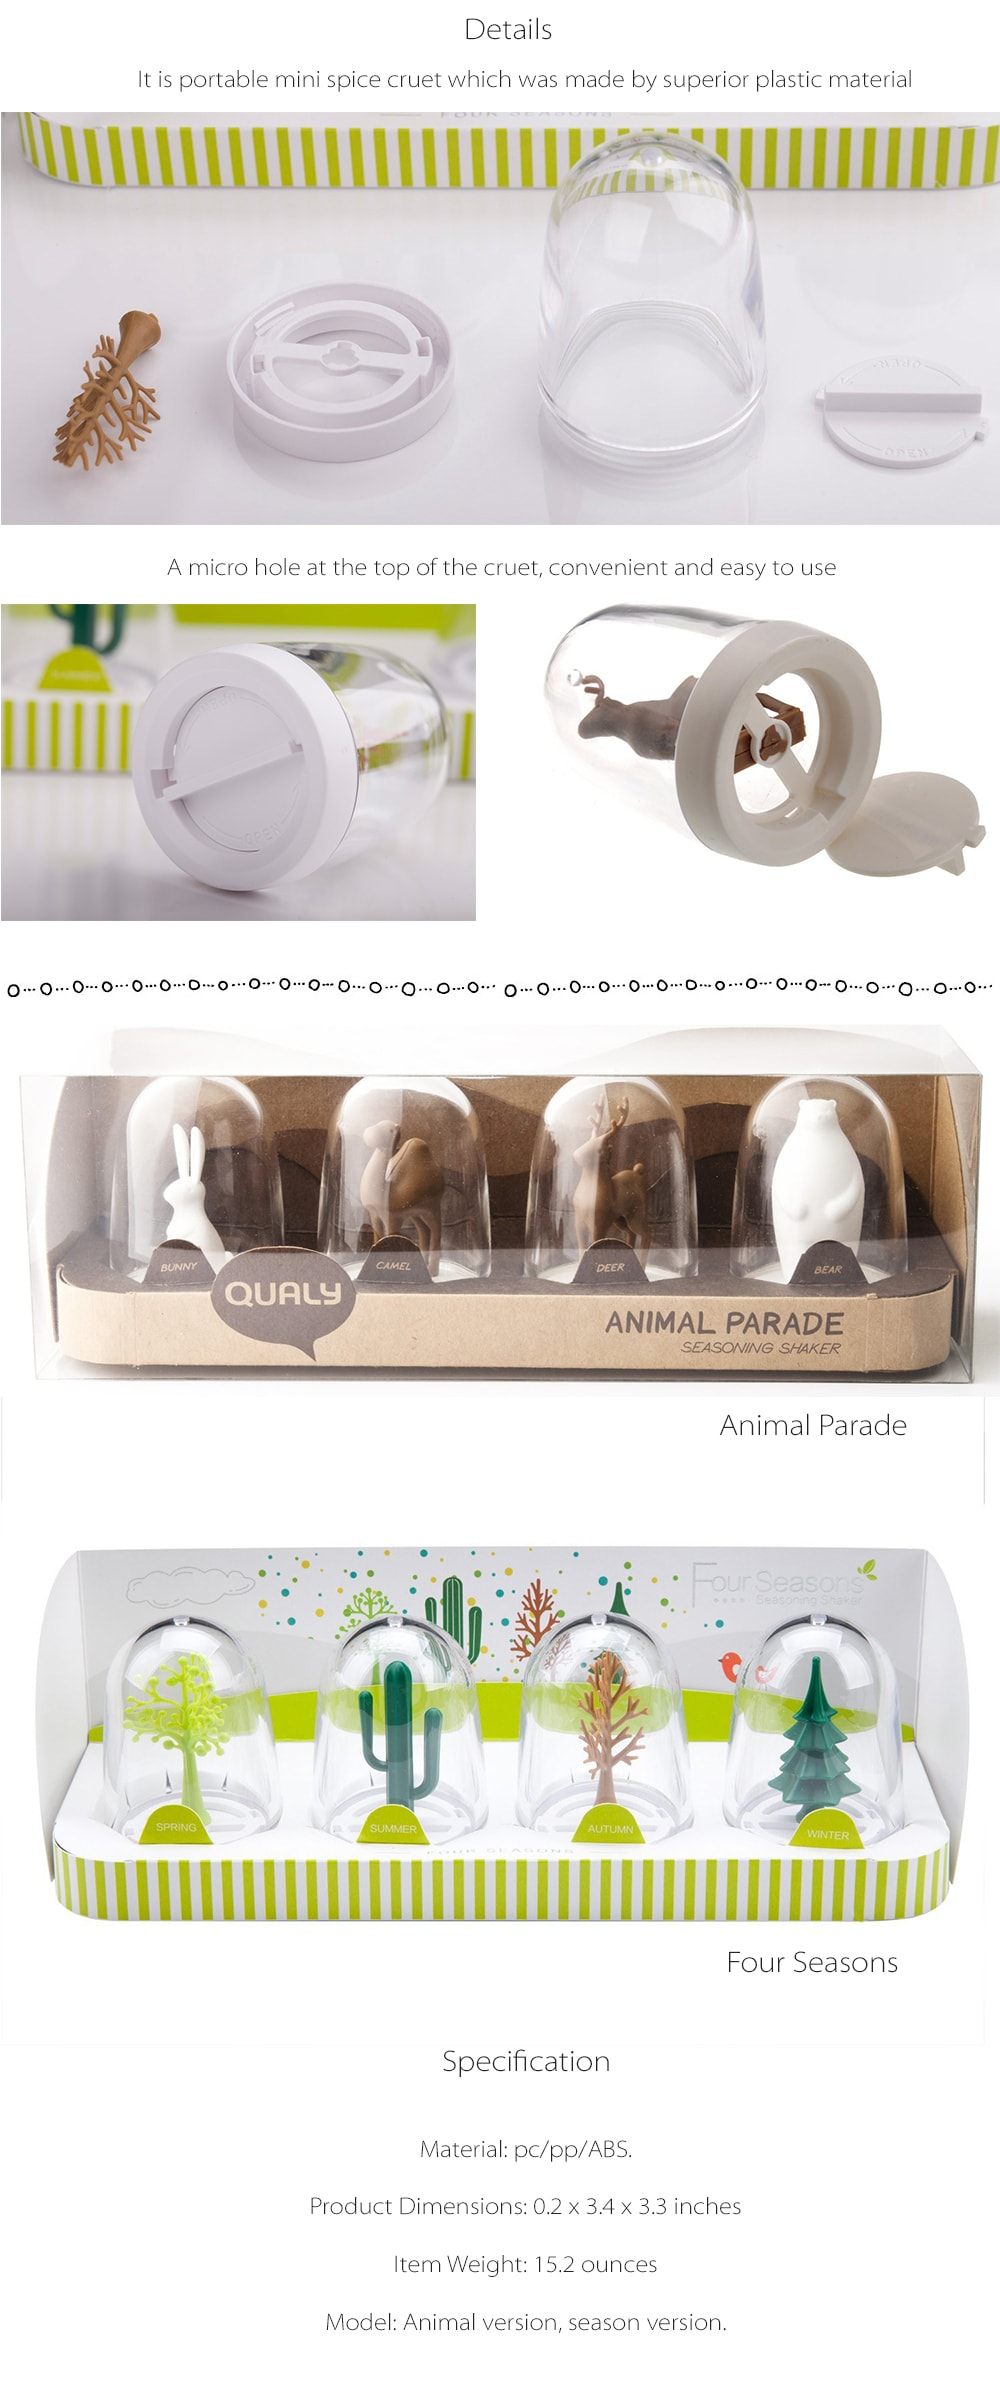 Animal/Four Season Shaker Set Bringing Nature Right To Your Dining Table